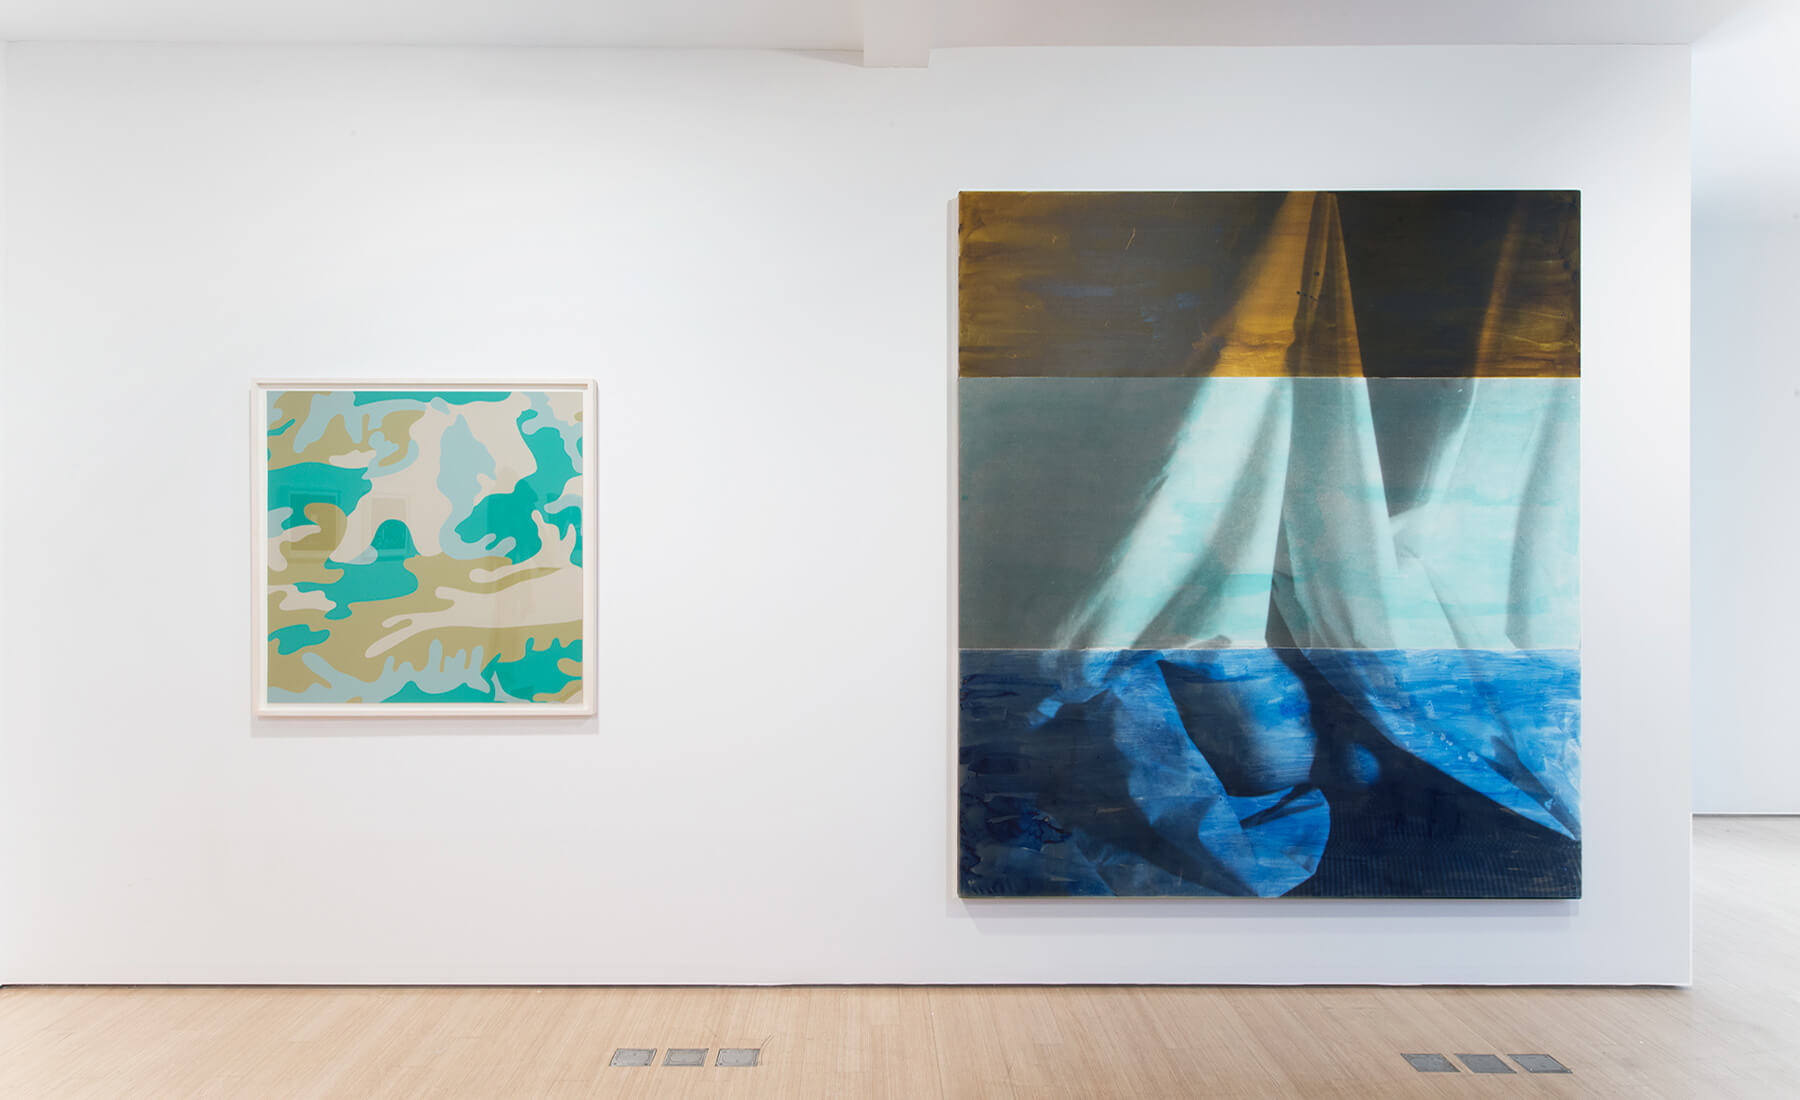 Installation Sgorbati Projects, January 2016                                        BODY SUPERFICIAL                                       Artists Pictured: Andy Warhol, David Salle